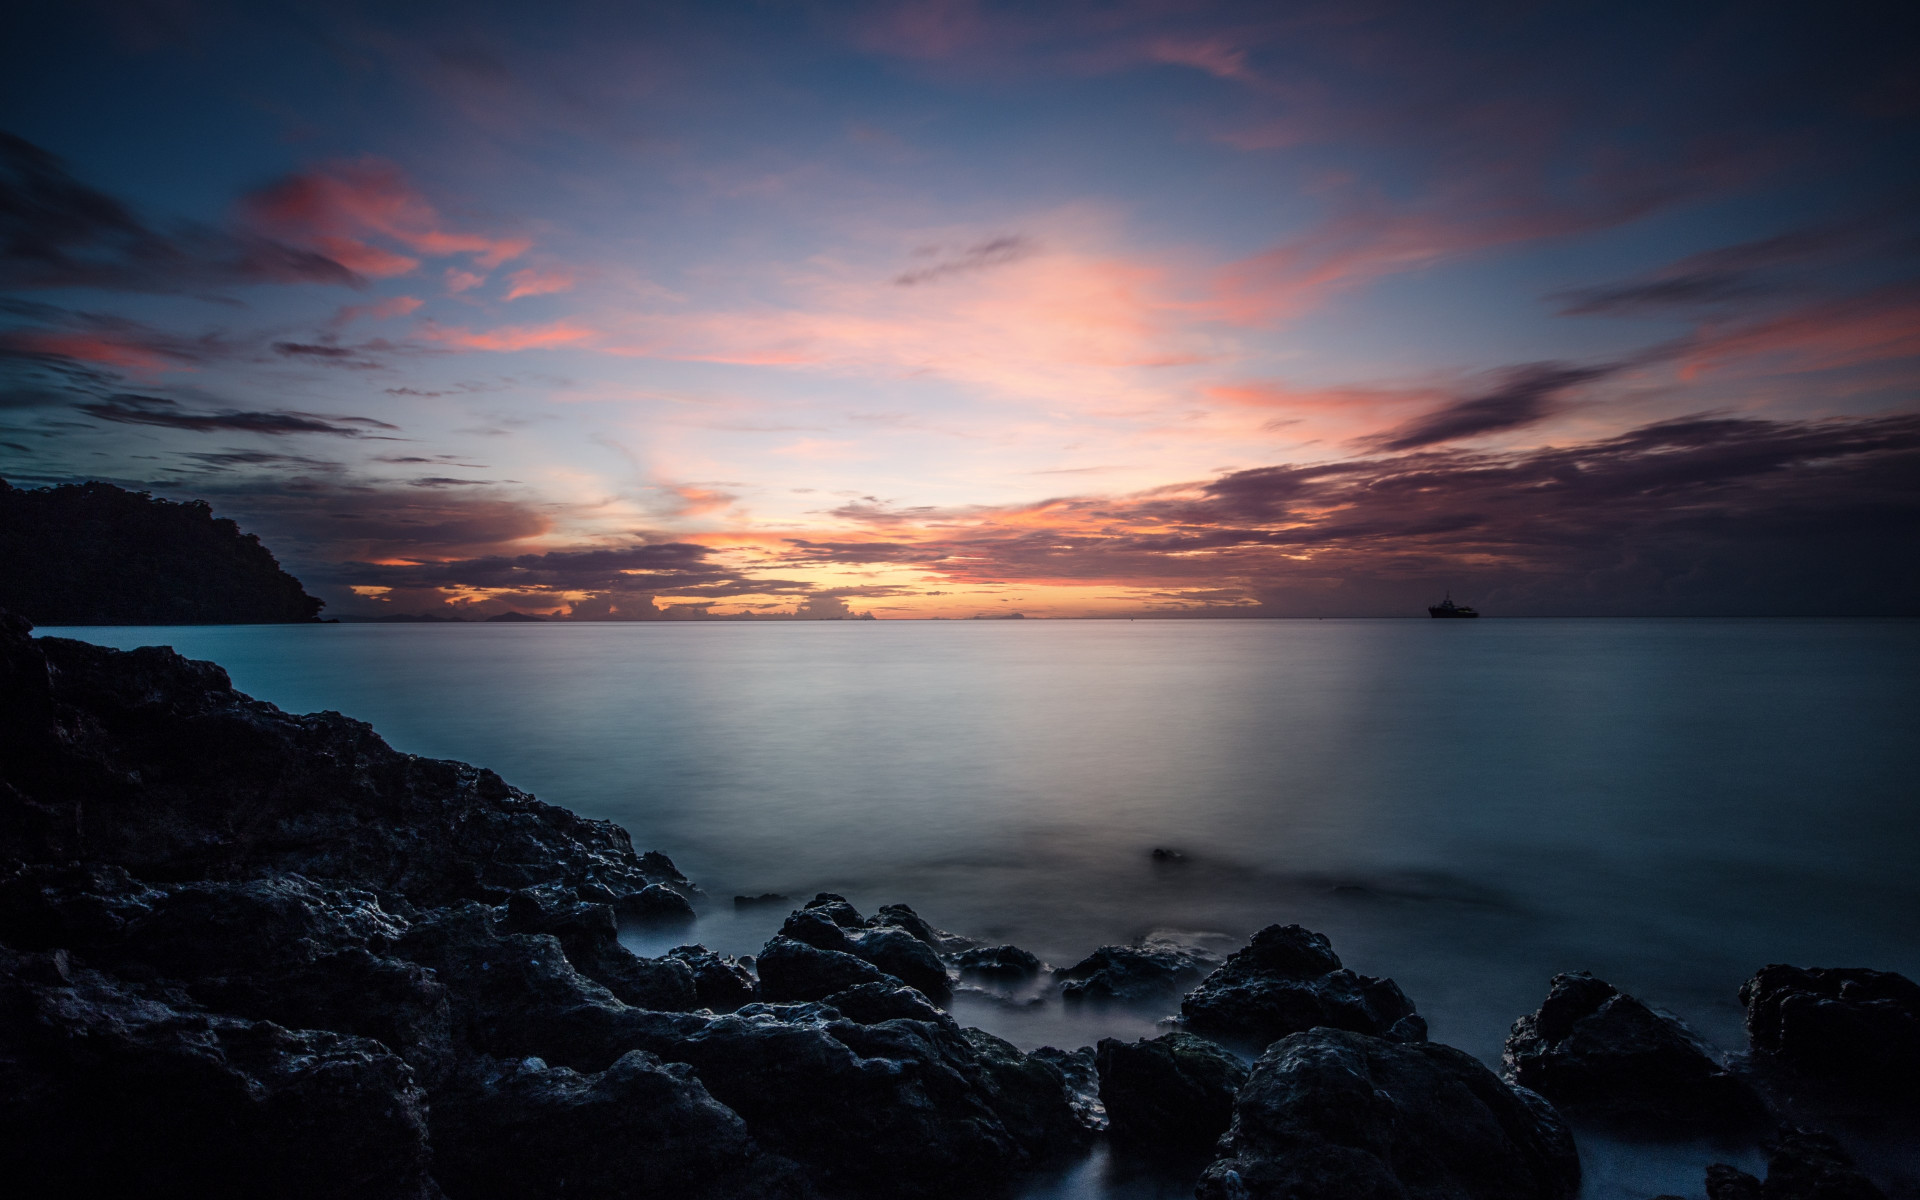 Sunset, rocks, clouds, view from Thailand wallpaper 1920x1200